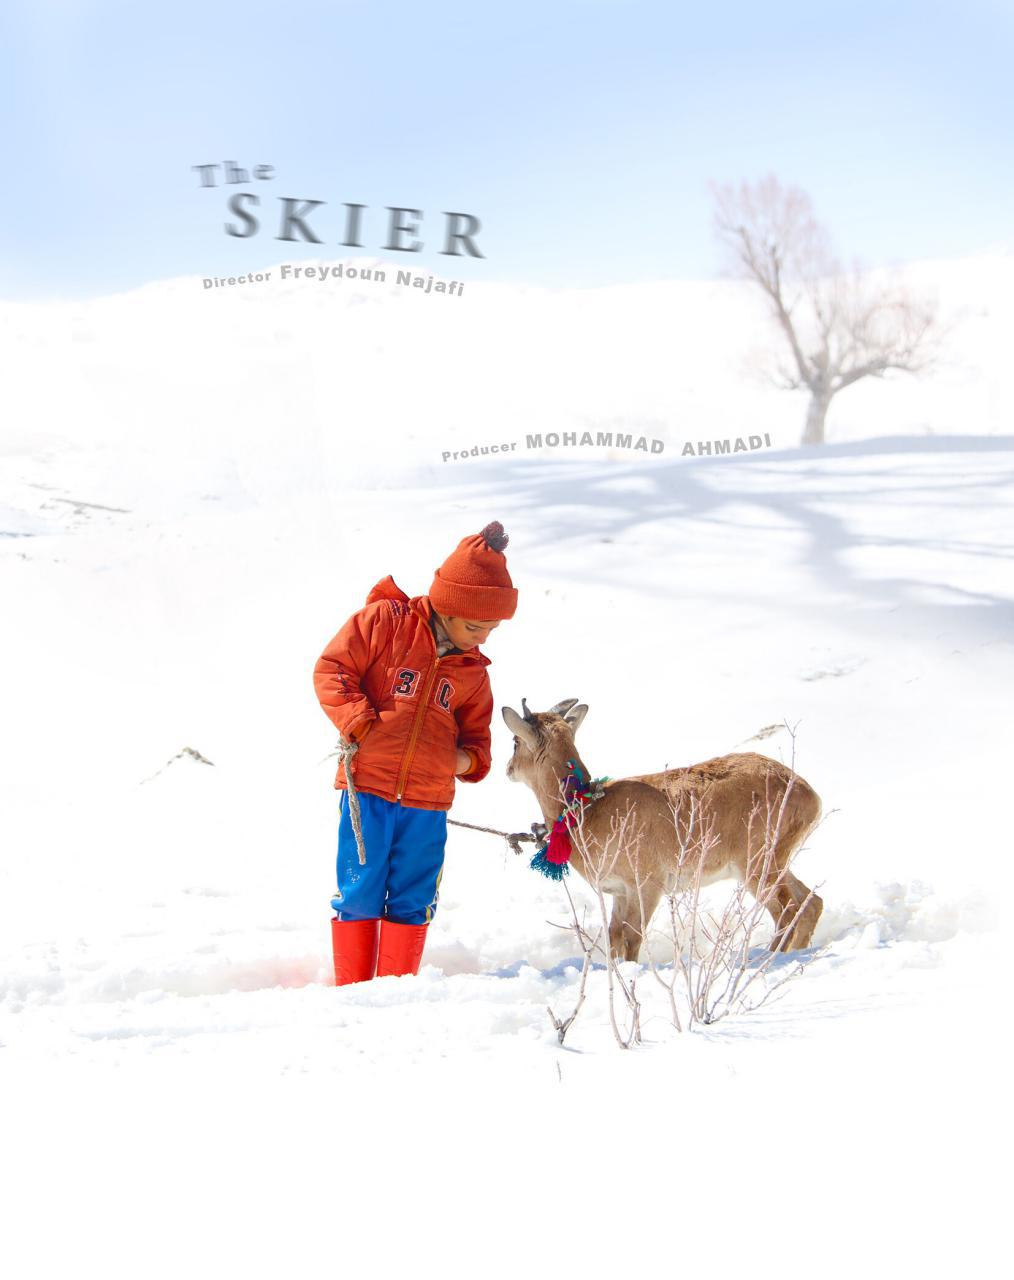 The_skier_Poster